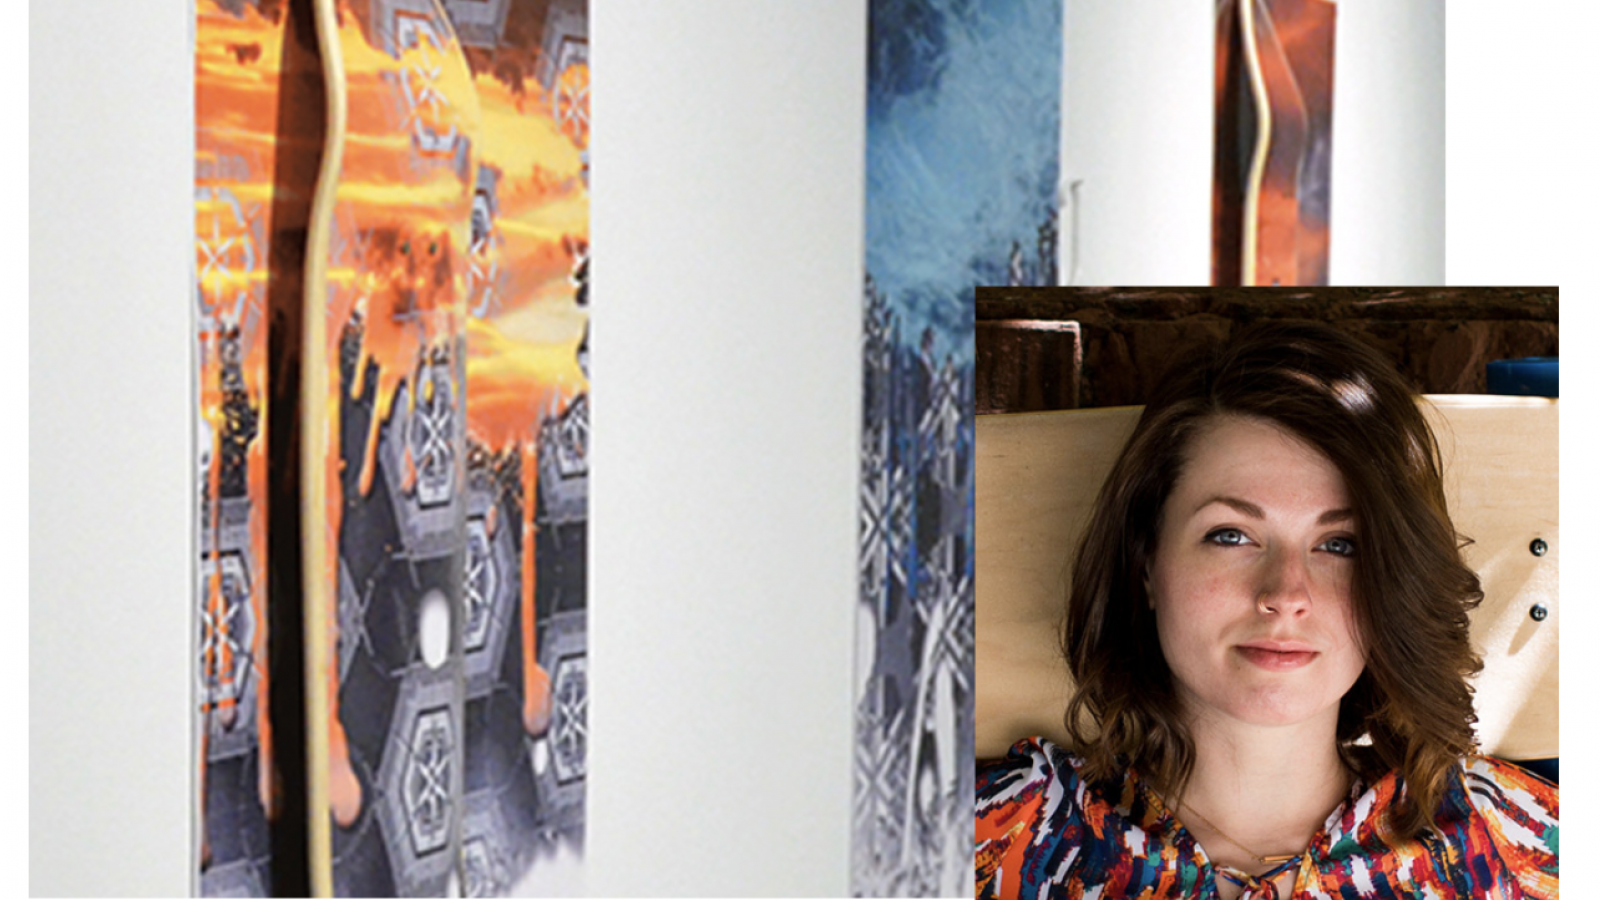 Introducing Adobe Creative Resident Chelsea Burton